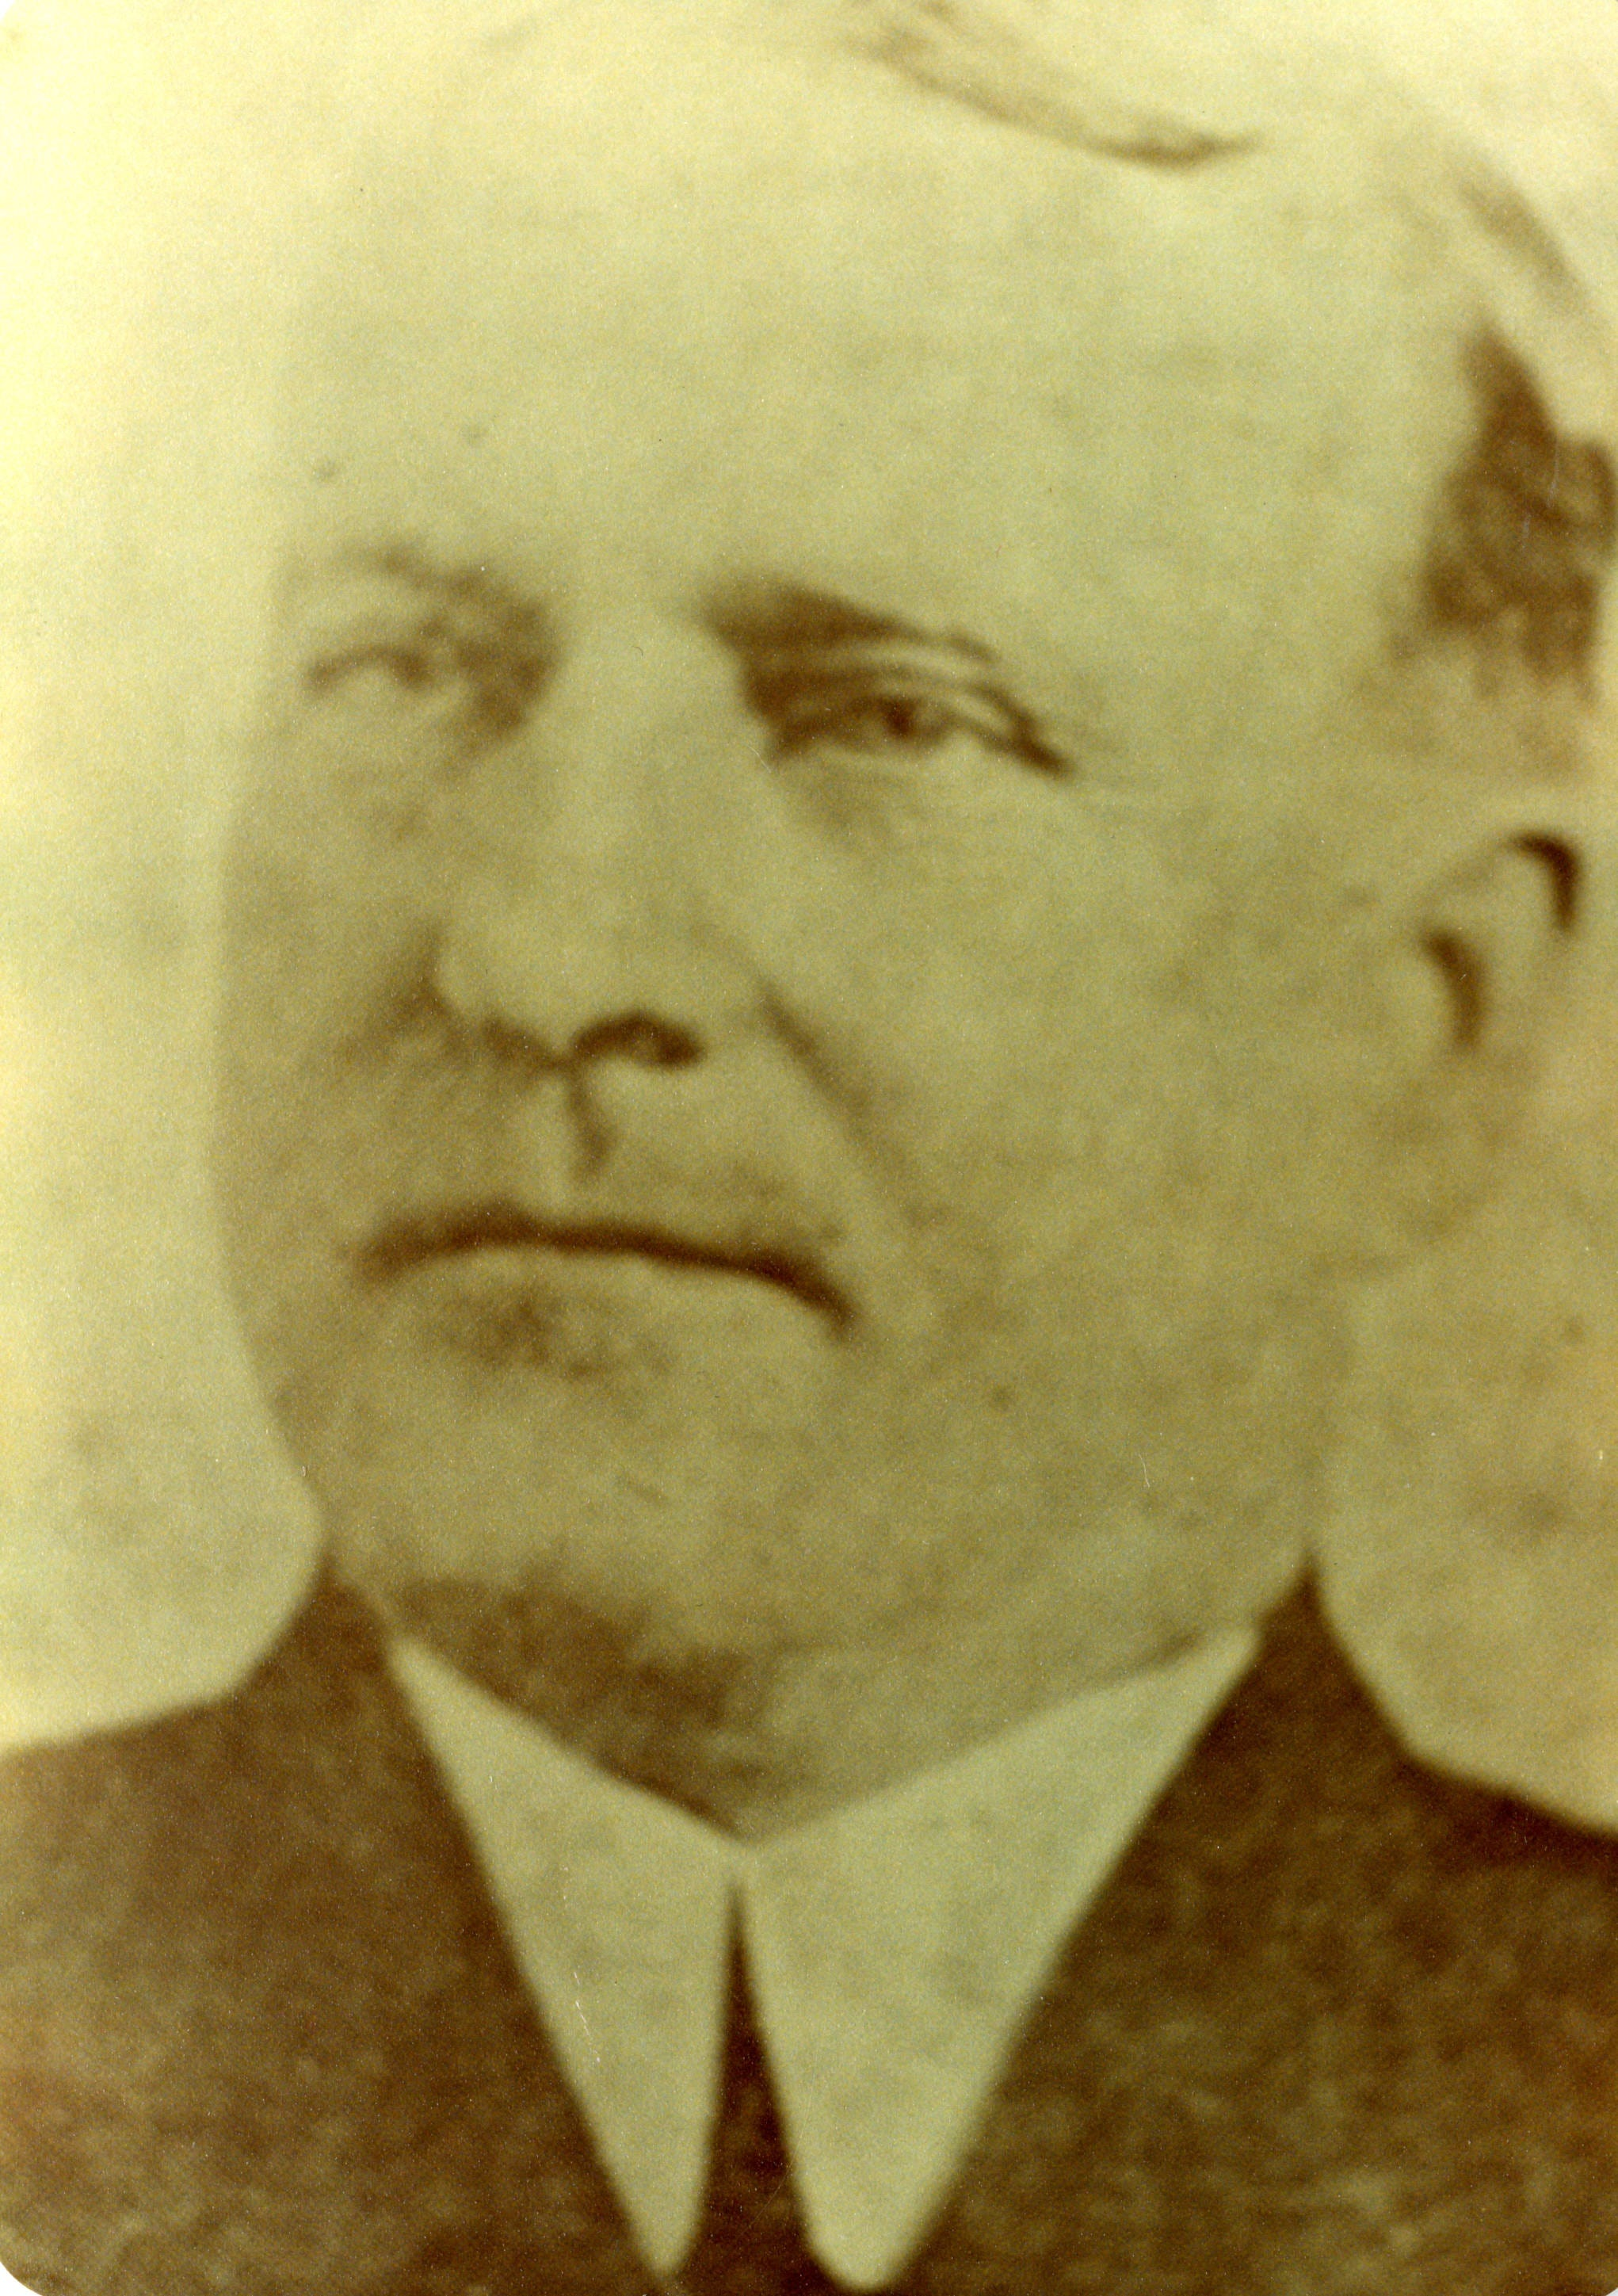 Tate Brady, founder of Tulsa and a member of the Ku Klux Klan, was among those who participated in the 1921 Tulsa massacre.